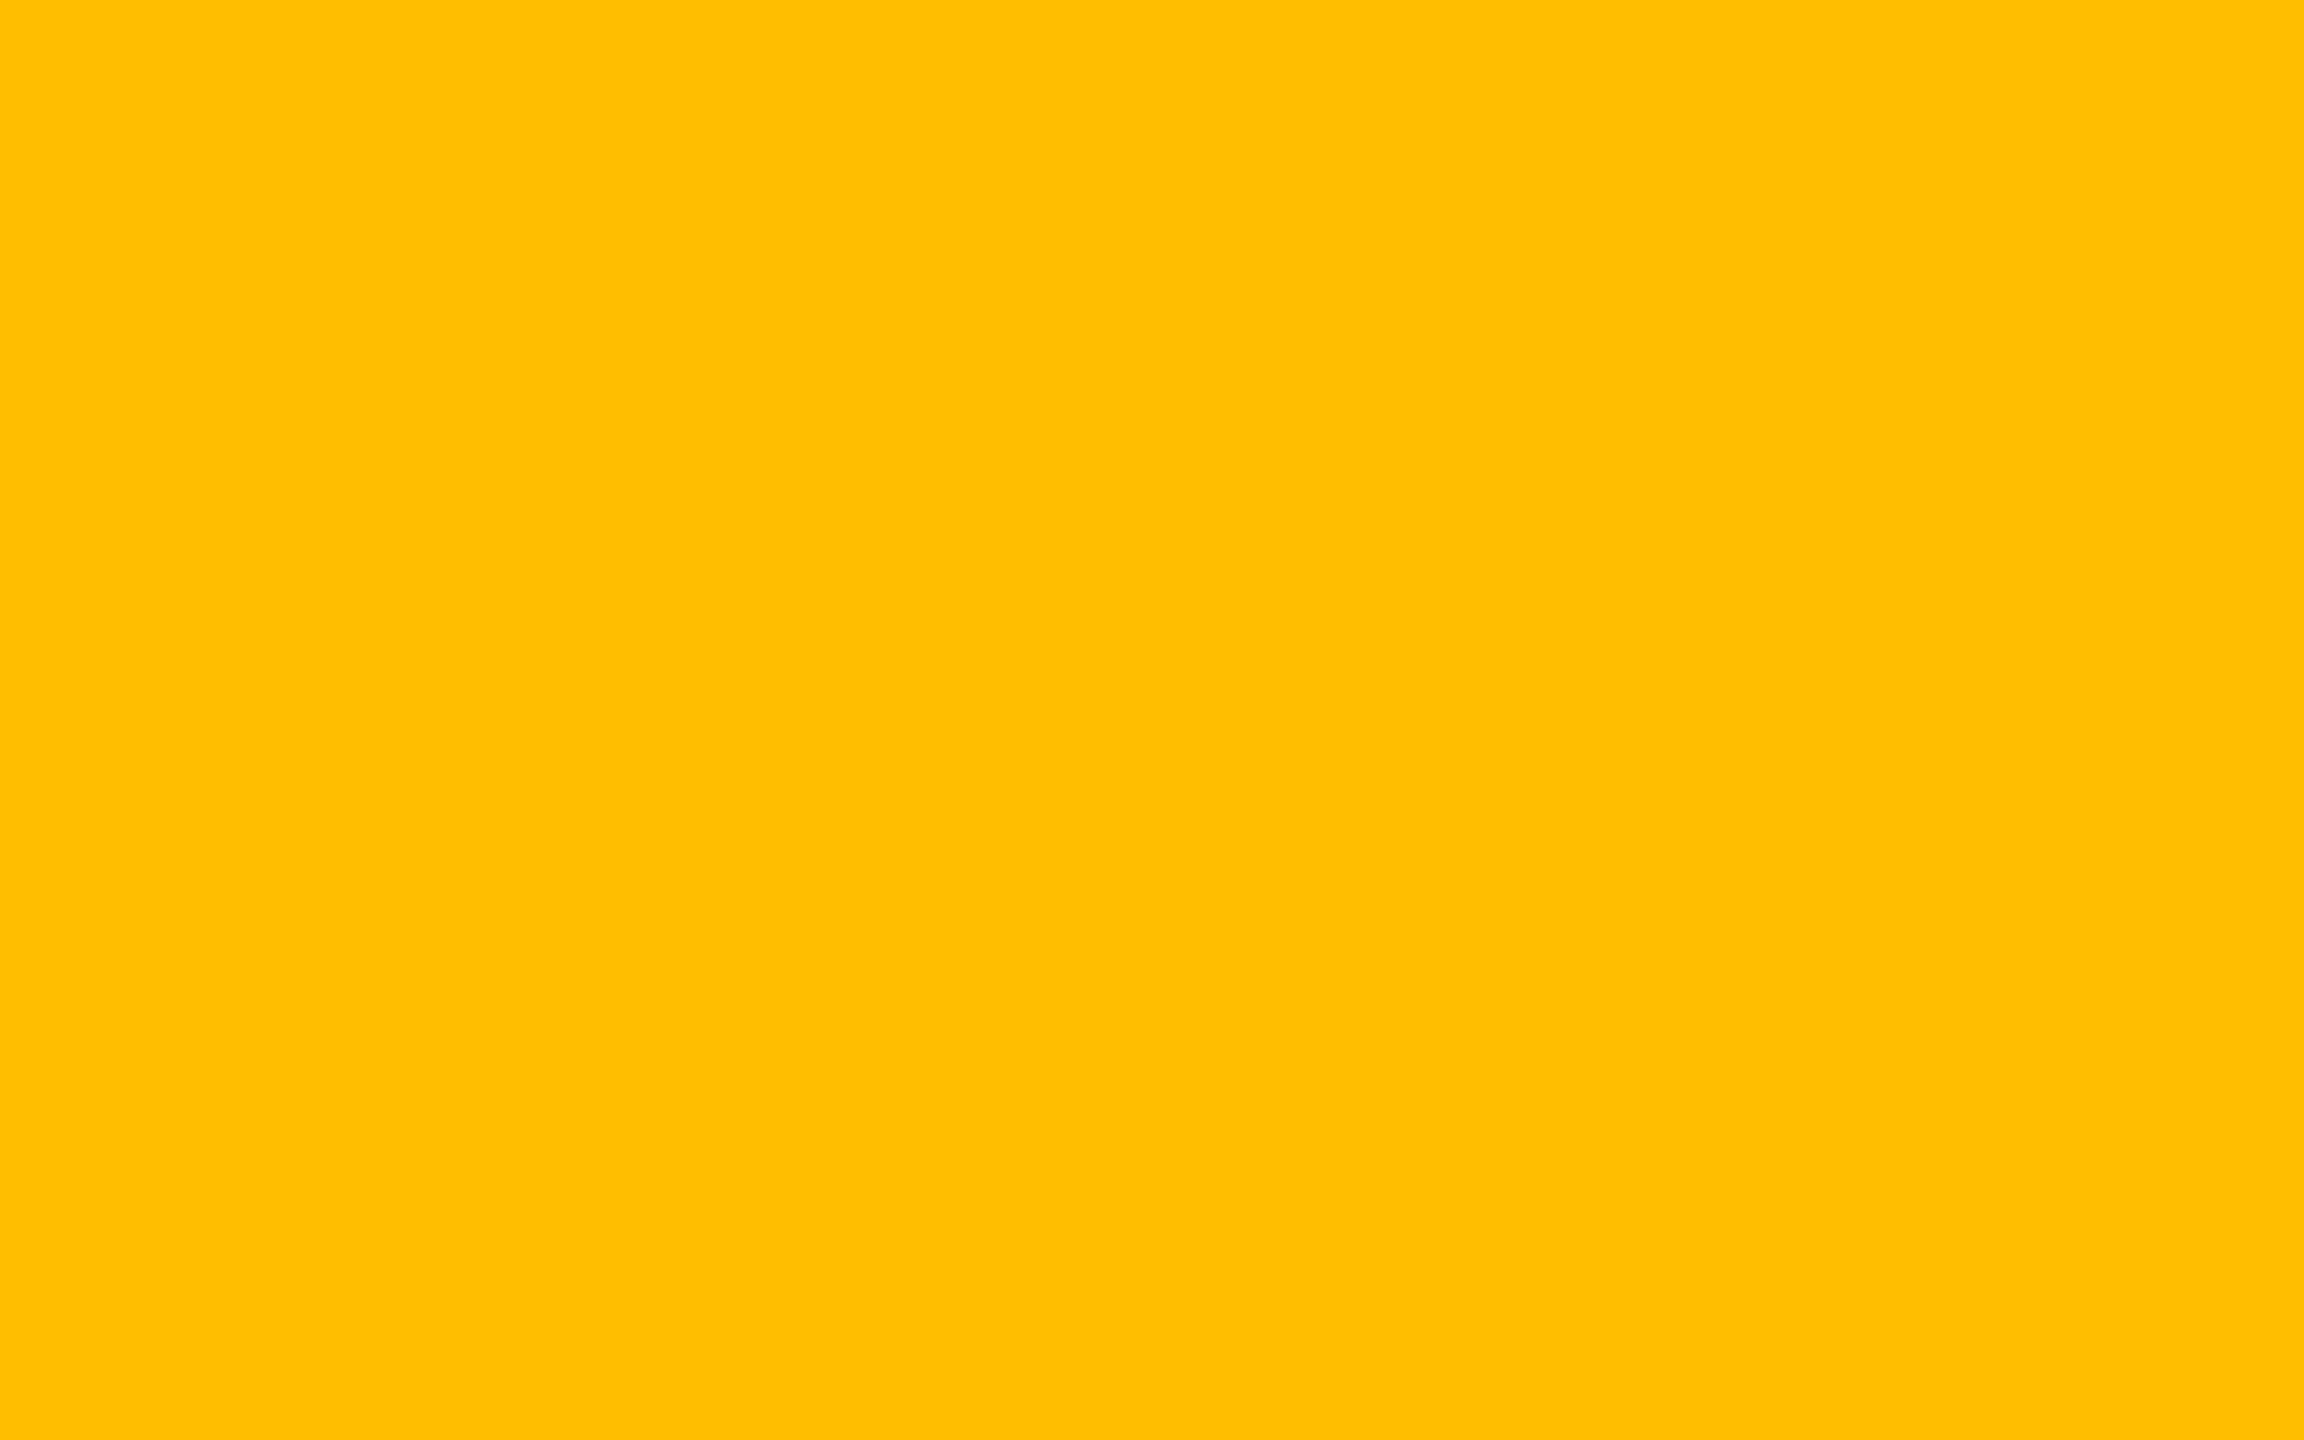 2304x1440 Amber Solid Color Background